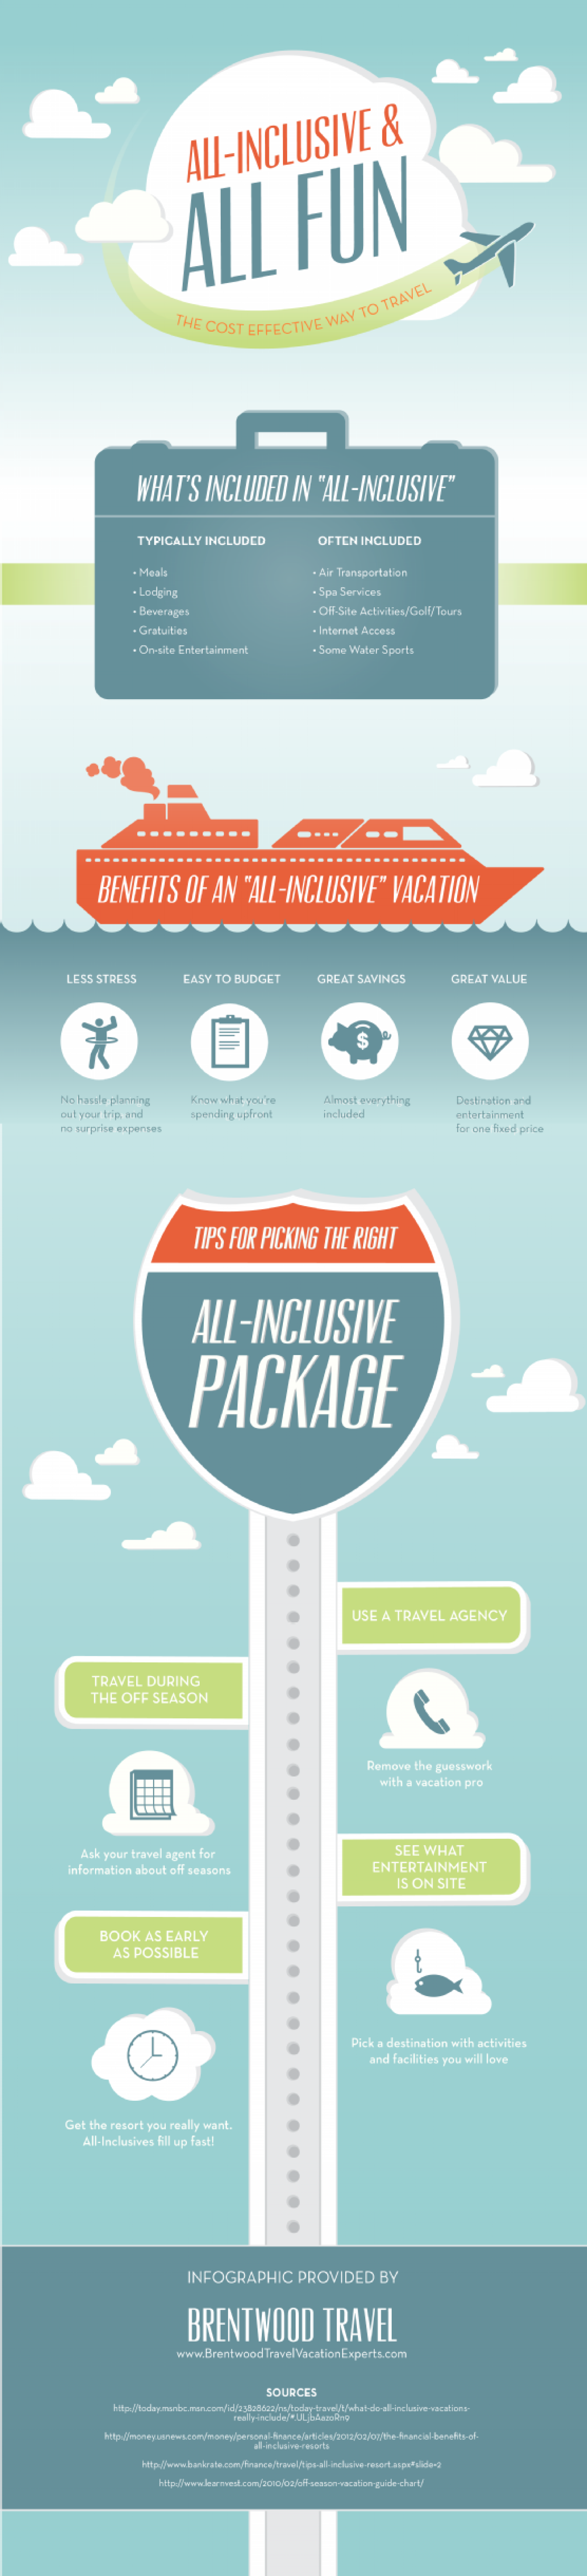 All-Inclusive and All Fun: The Cost-Effective Way to Travel  Infographic